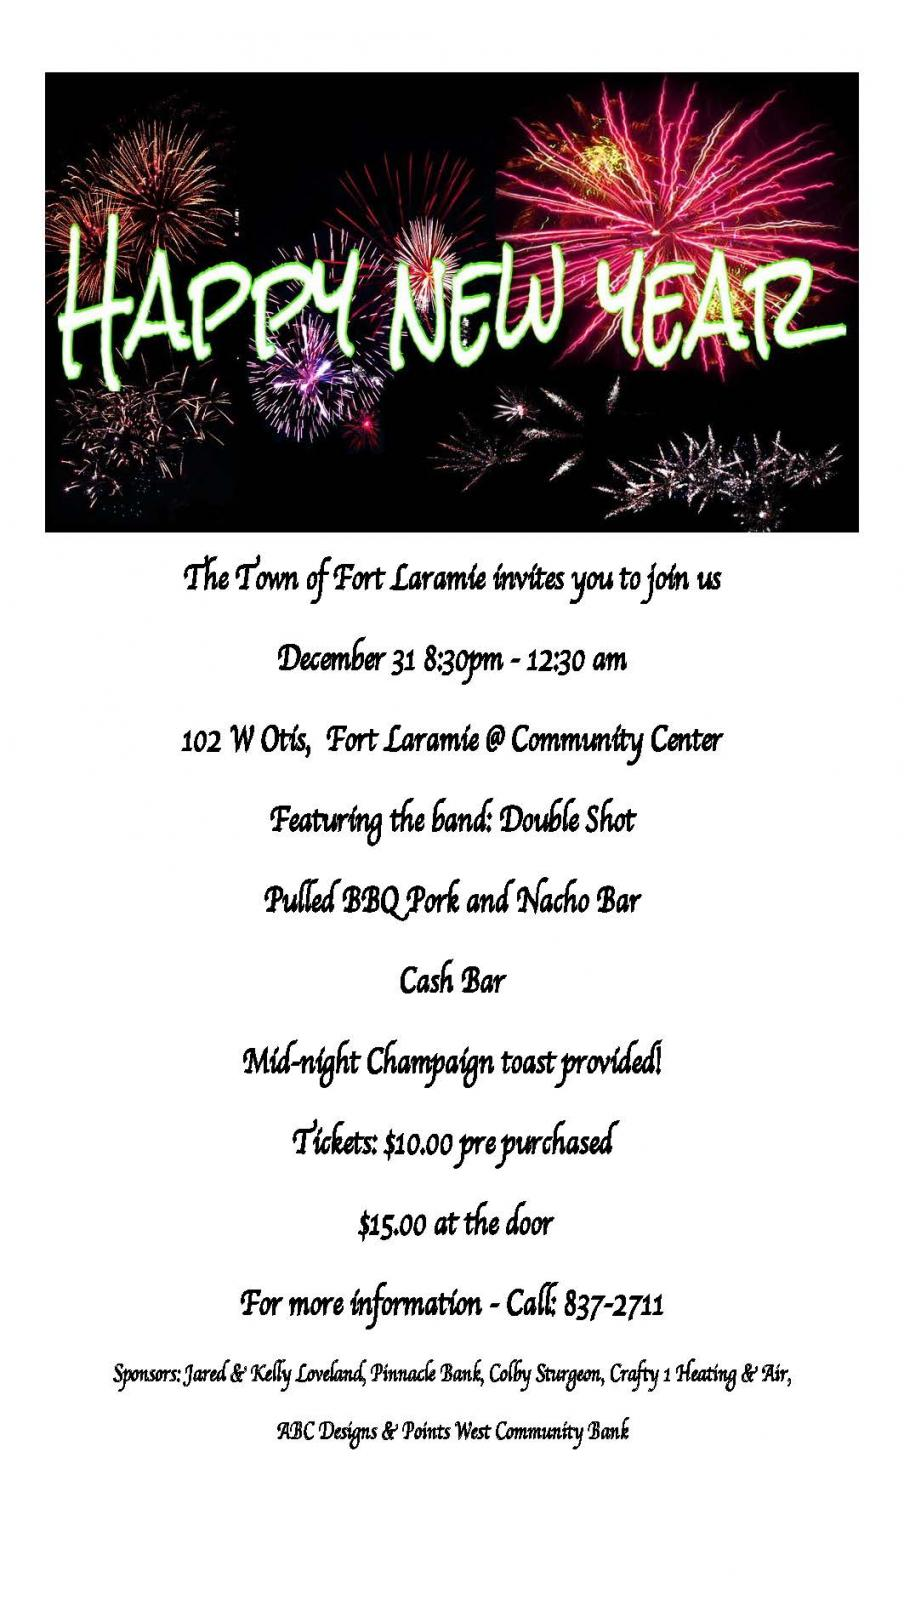 New Year Party in Fort Laramie Photo